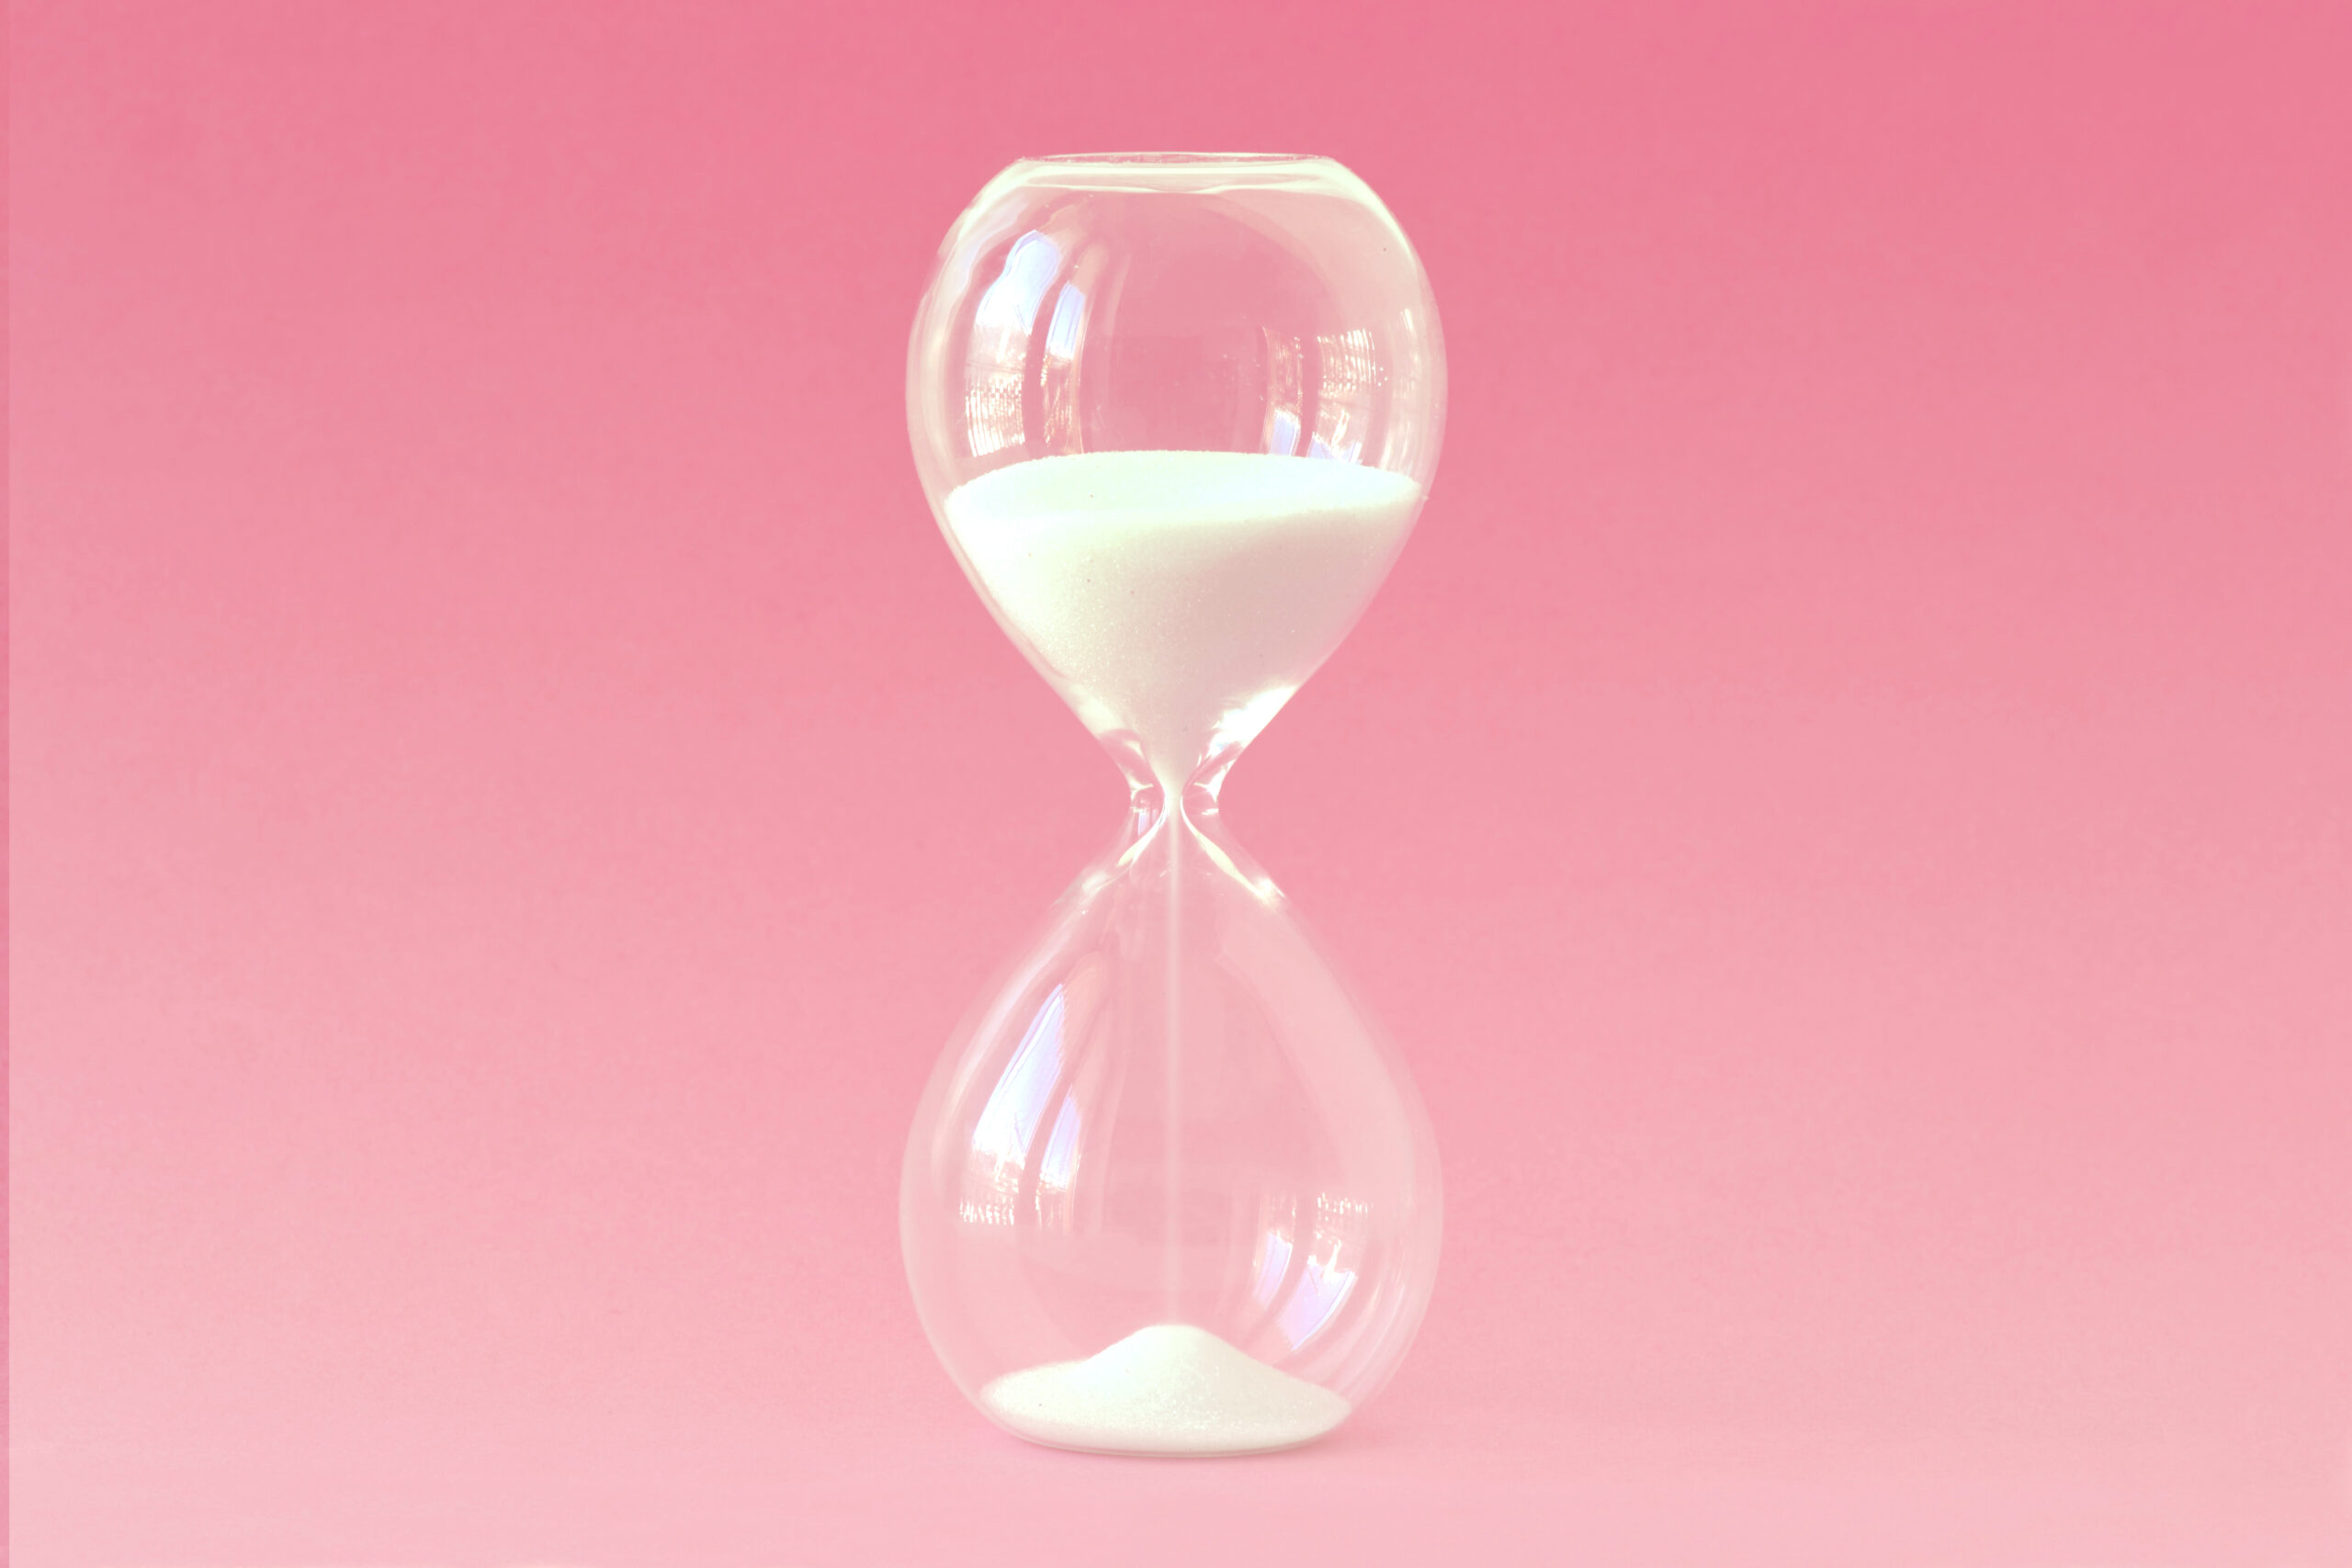 Hourglass on pink background – Concept of health, fertility and biological clock in women